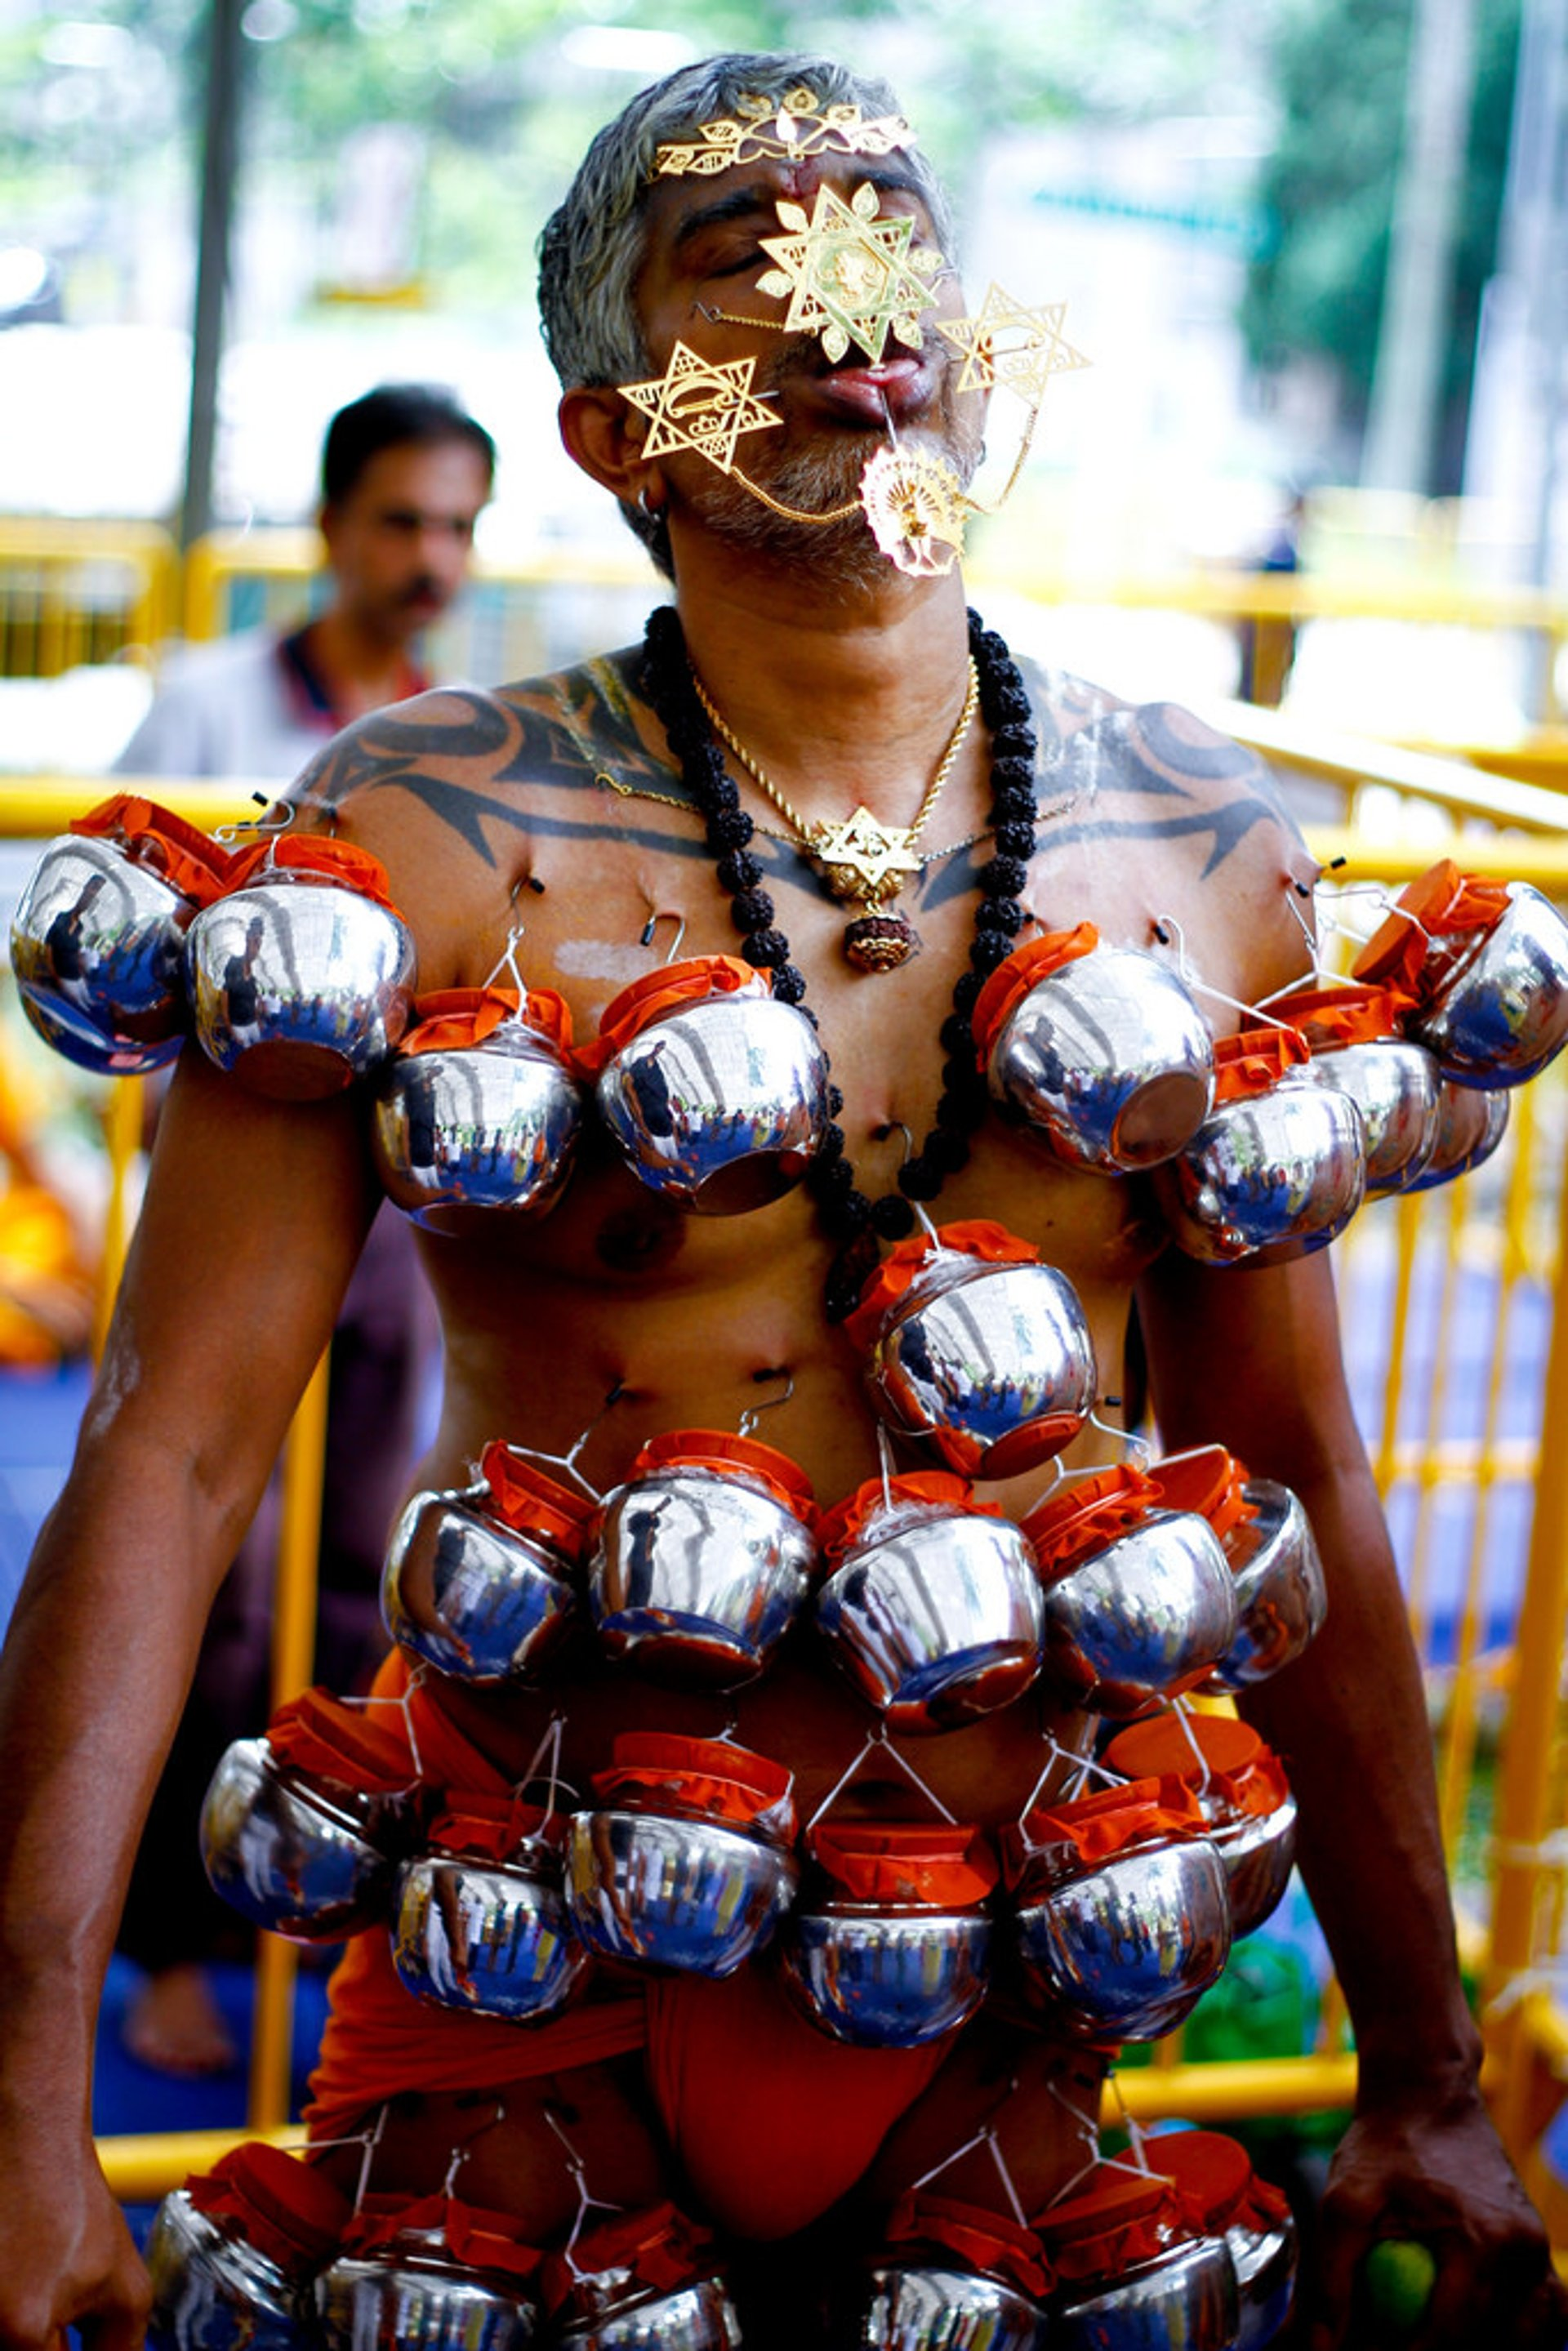 Best time to see Thaipusam in Singapore 2020